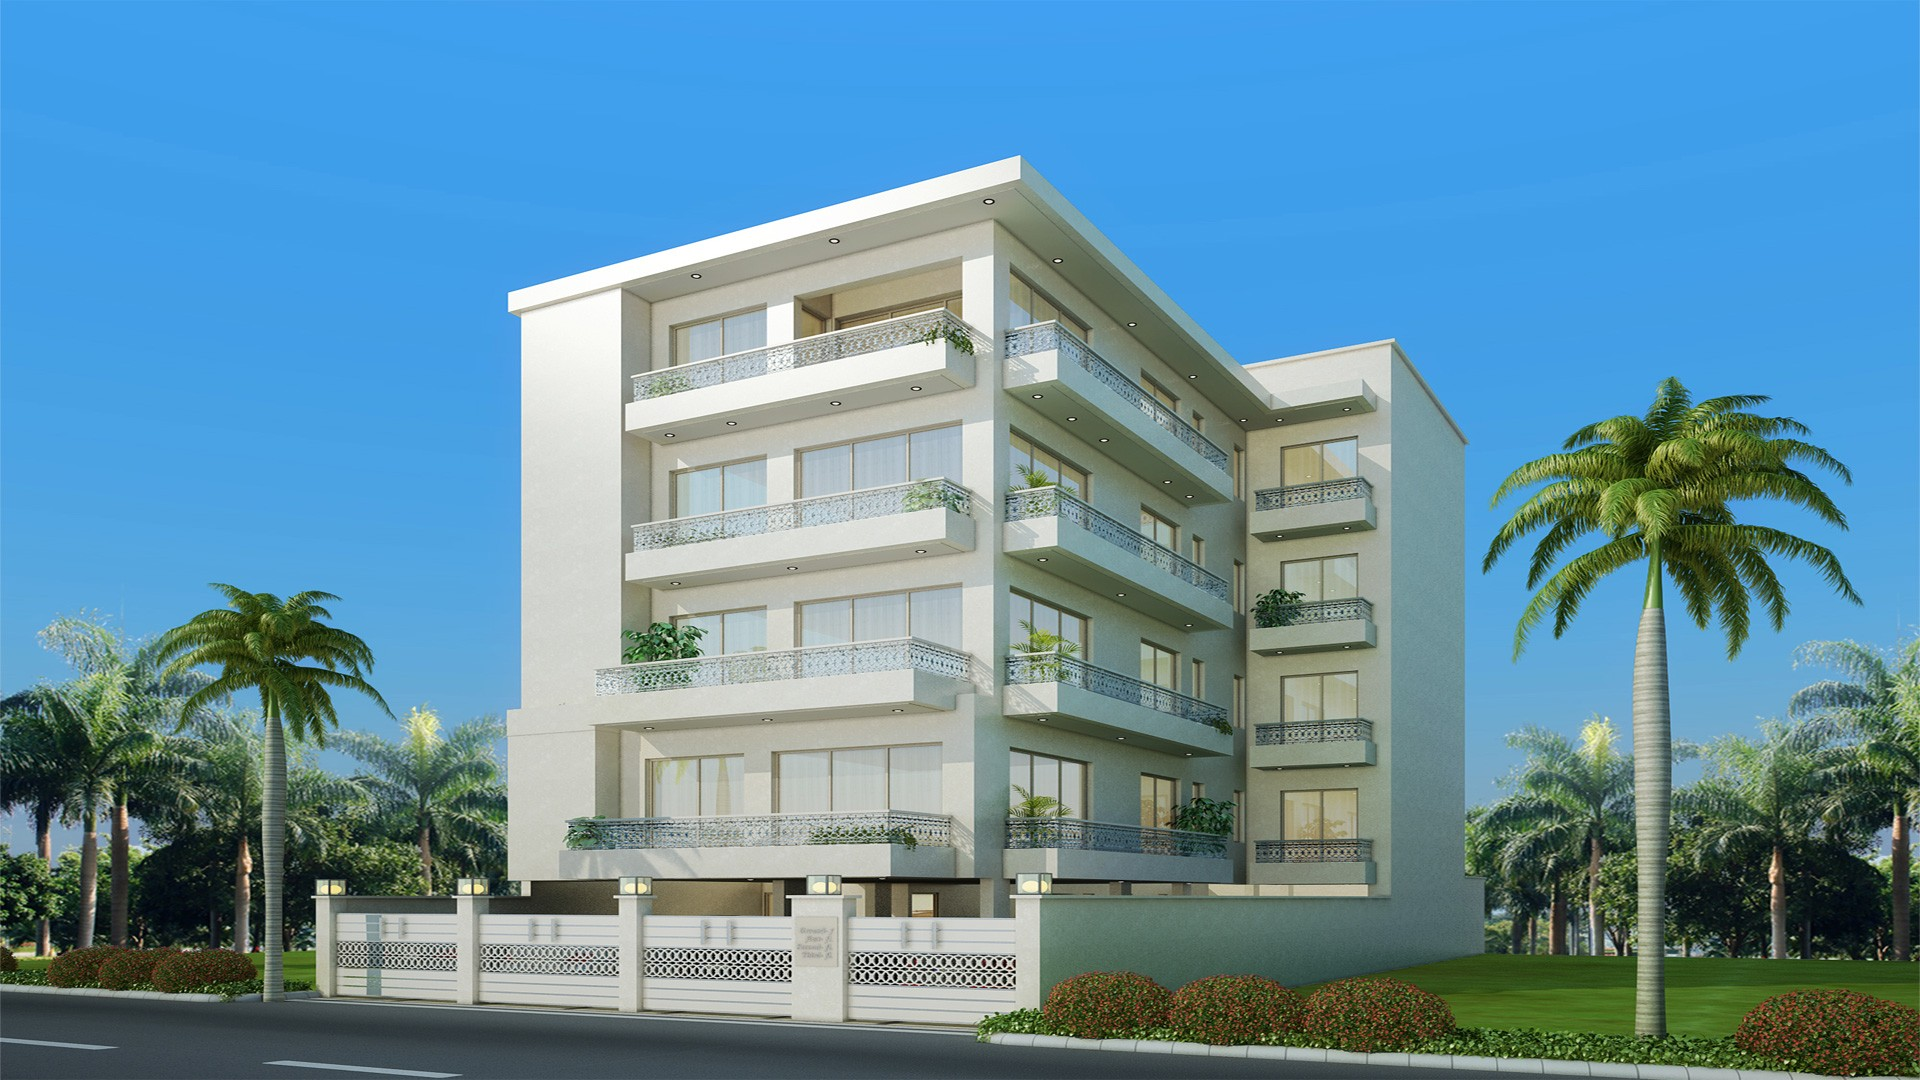 Beautifuly designed building by florence homes in safdarjung enclave